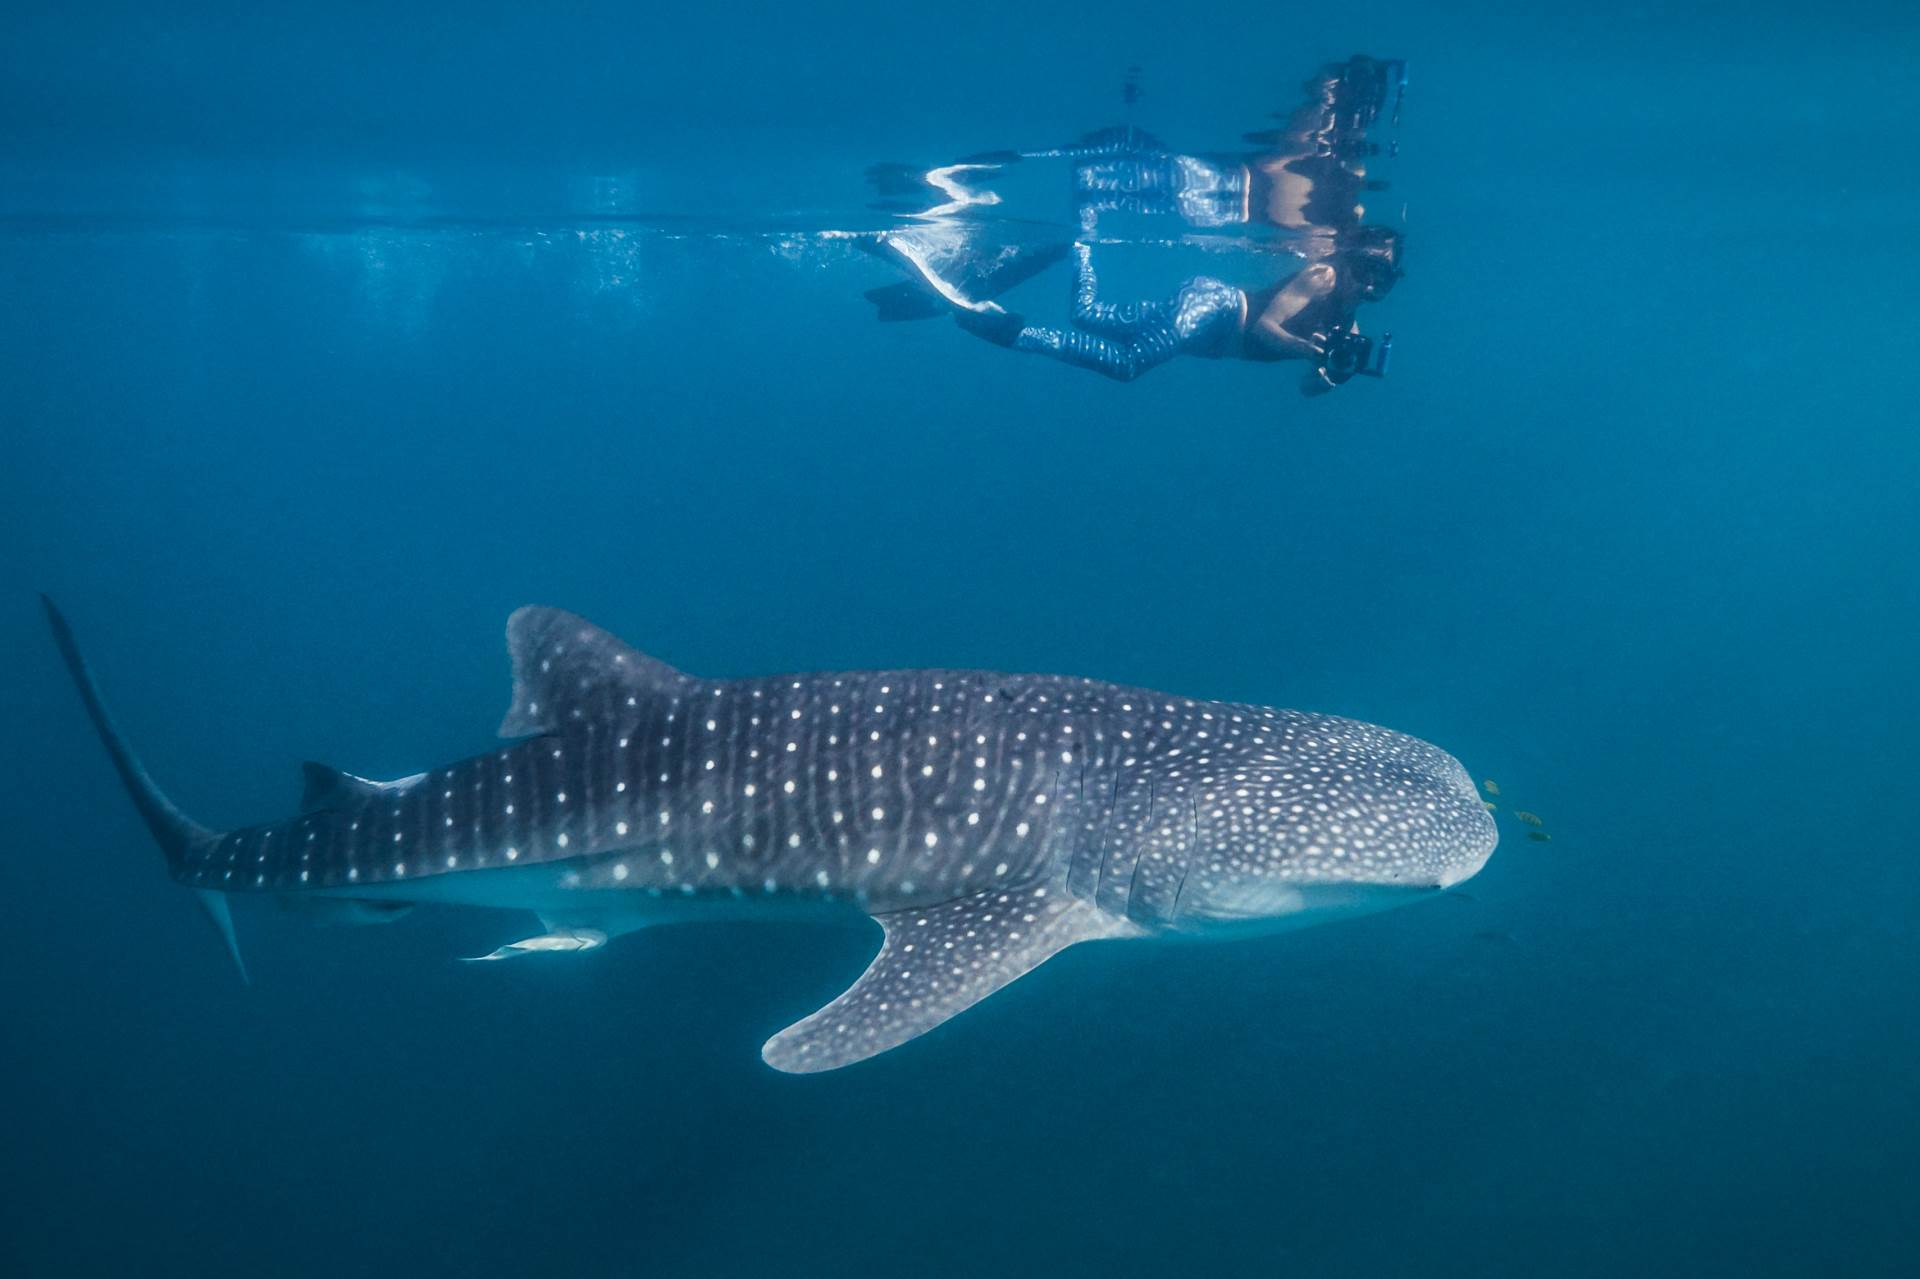 A snorkeller swims with a juvenile whale shark off Mafia Island in Tanzania. The area is sheltered, so you get flat and sunny days like here to capture nice reflections at the surface. Mafia Island is probably the best place in Africa to see whale sharks, plus it is a lovely island with a healthy reef in the nearby marine park.